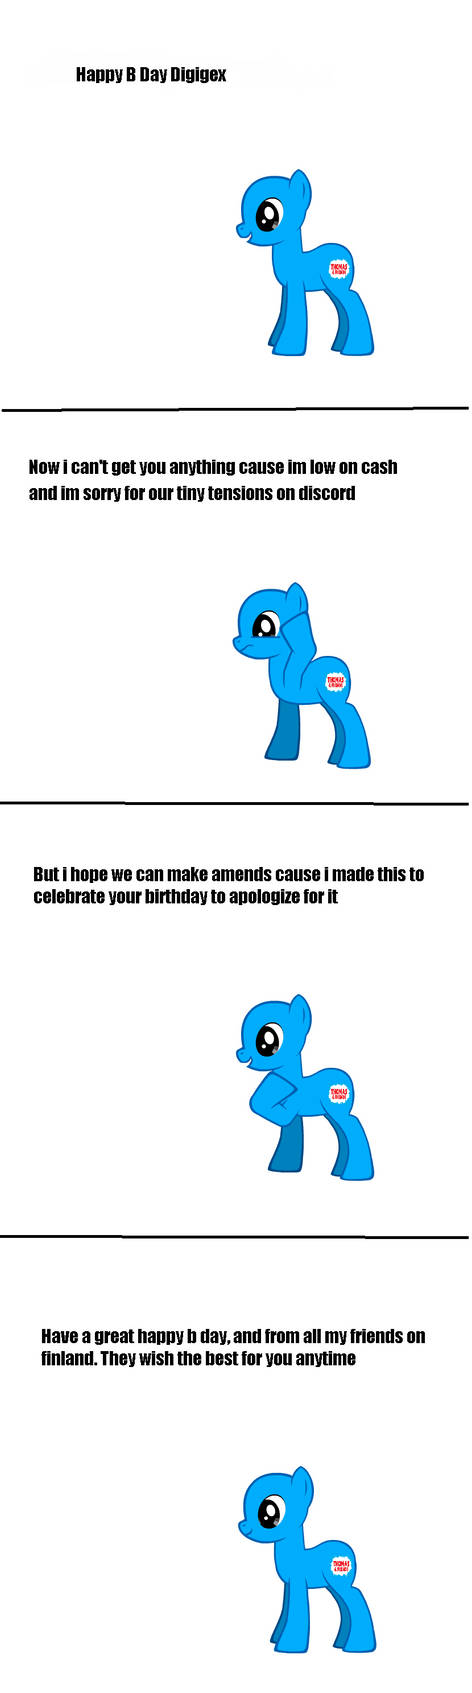 B Day Comic for digigex90 by J0Studios